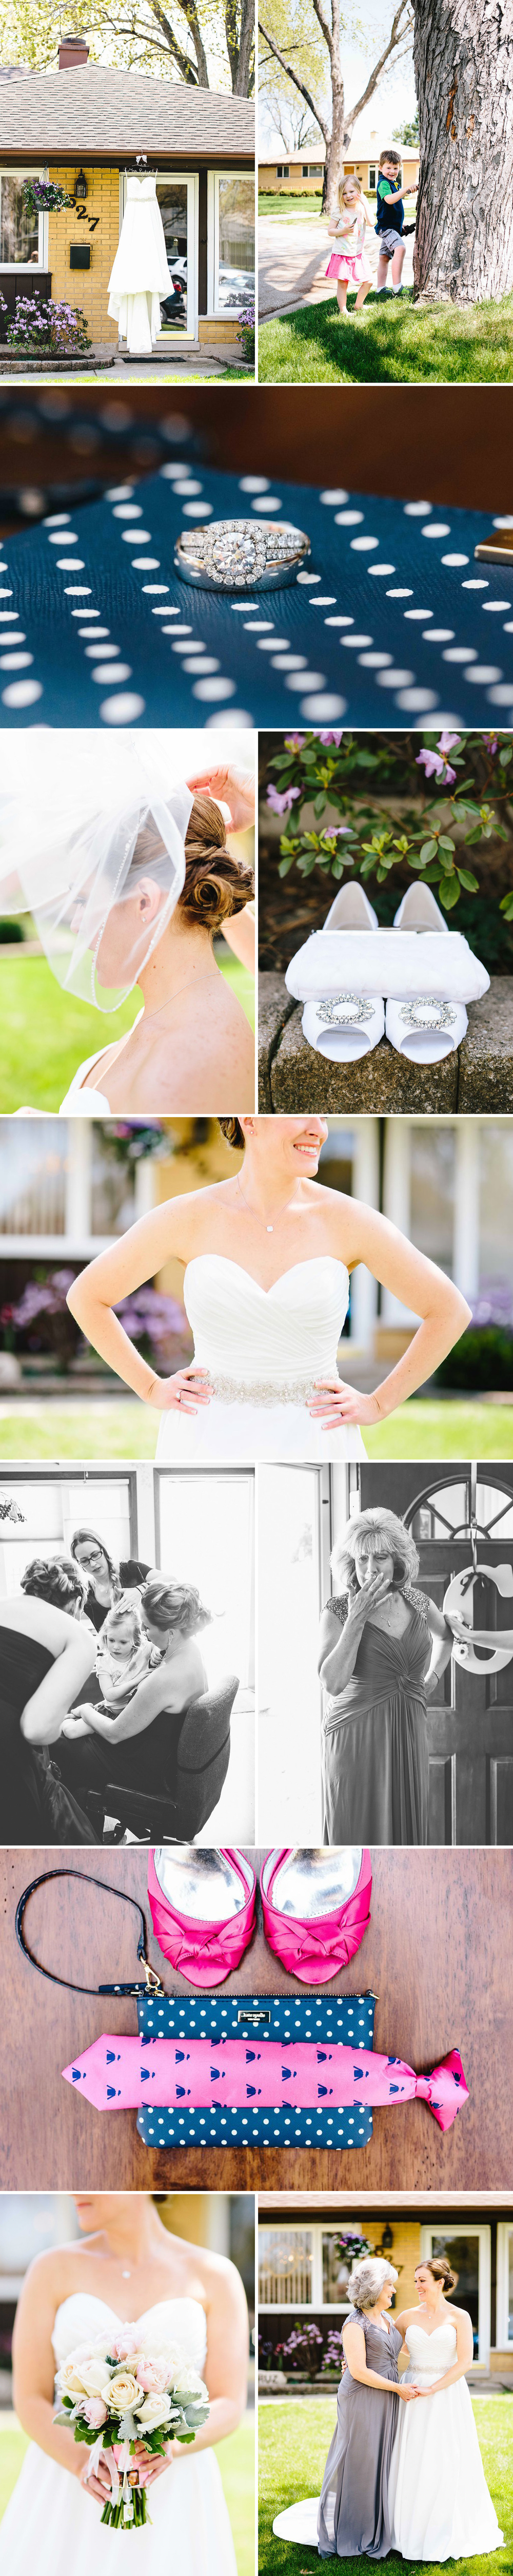 chicago-fine-art-wedding-photography-rytych1